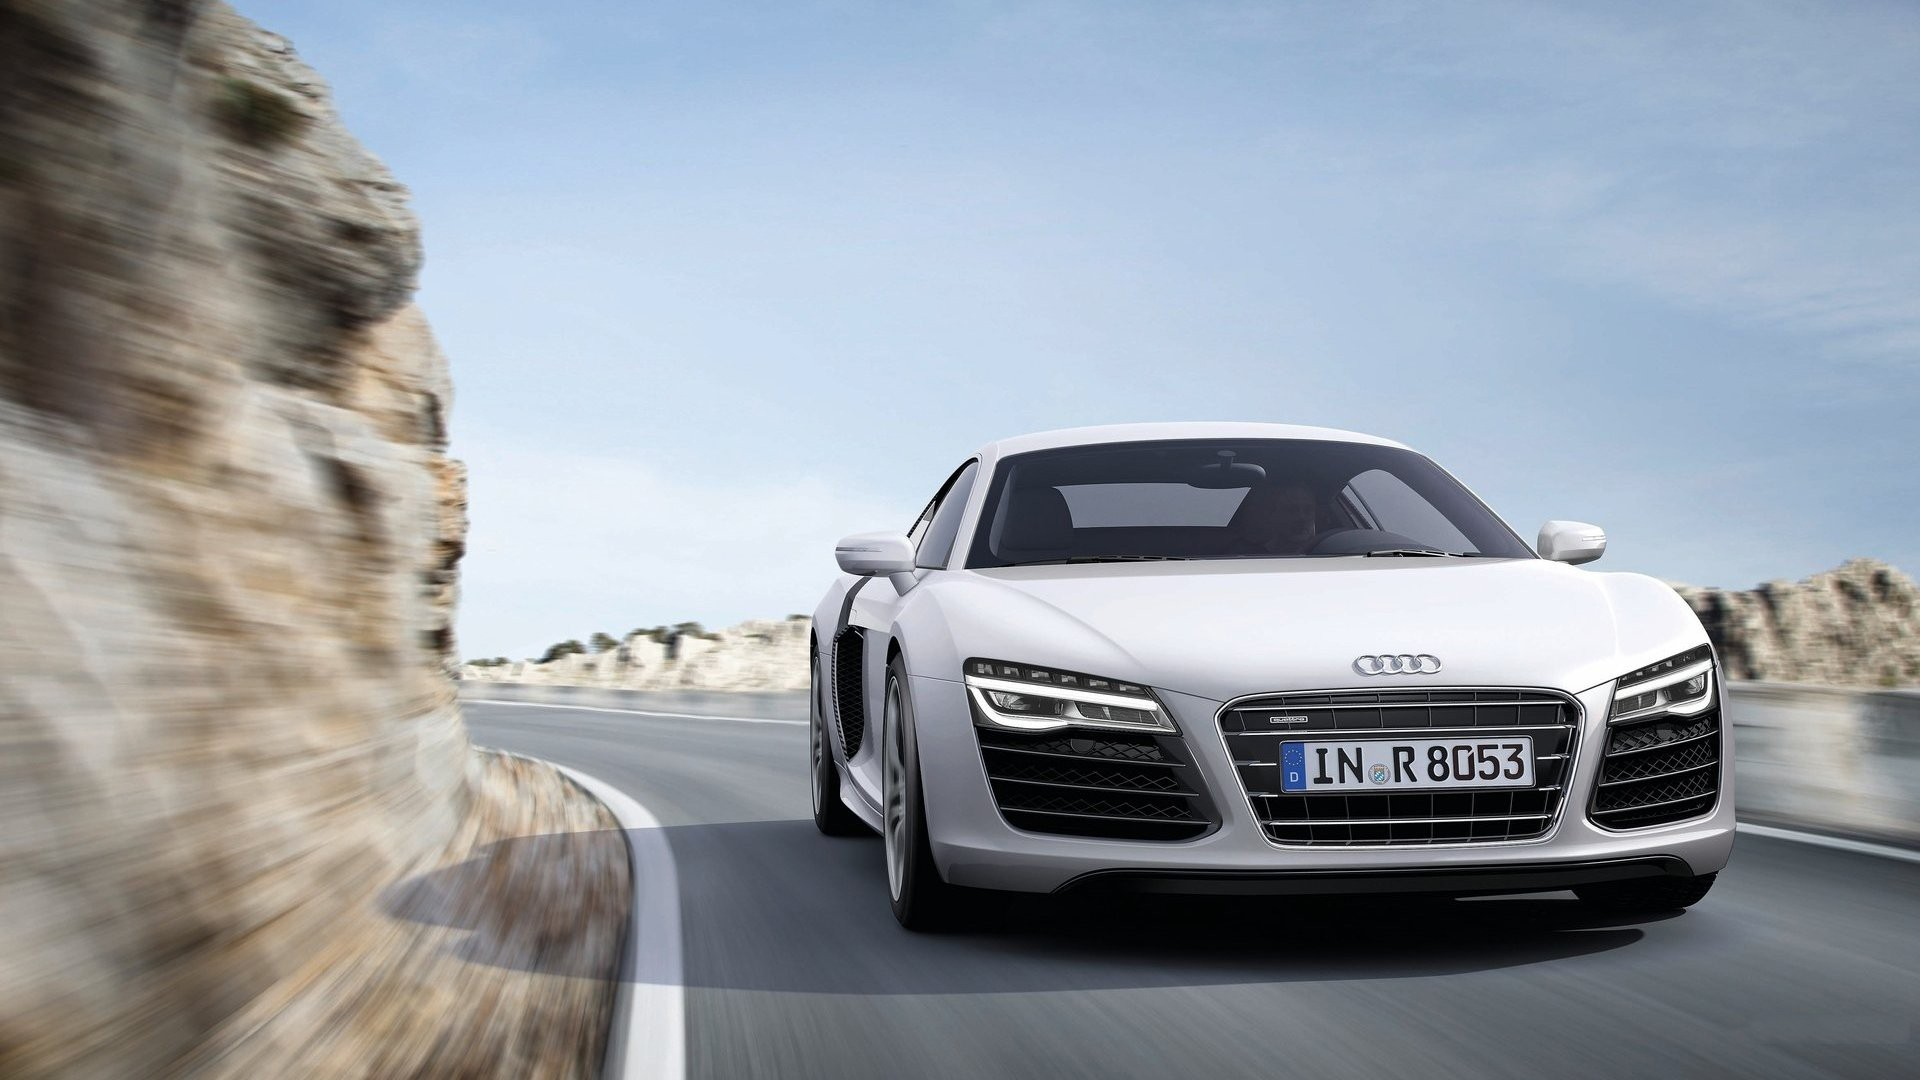 Cars Rocks Audi Front Roads Sports Cars White Cars Audi R8 V10 Wallpaper |  1920x1080 | 187109 | WallpaperUP